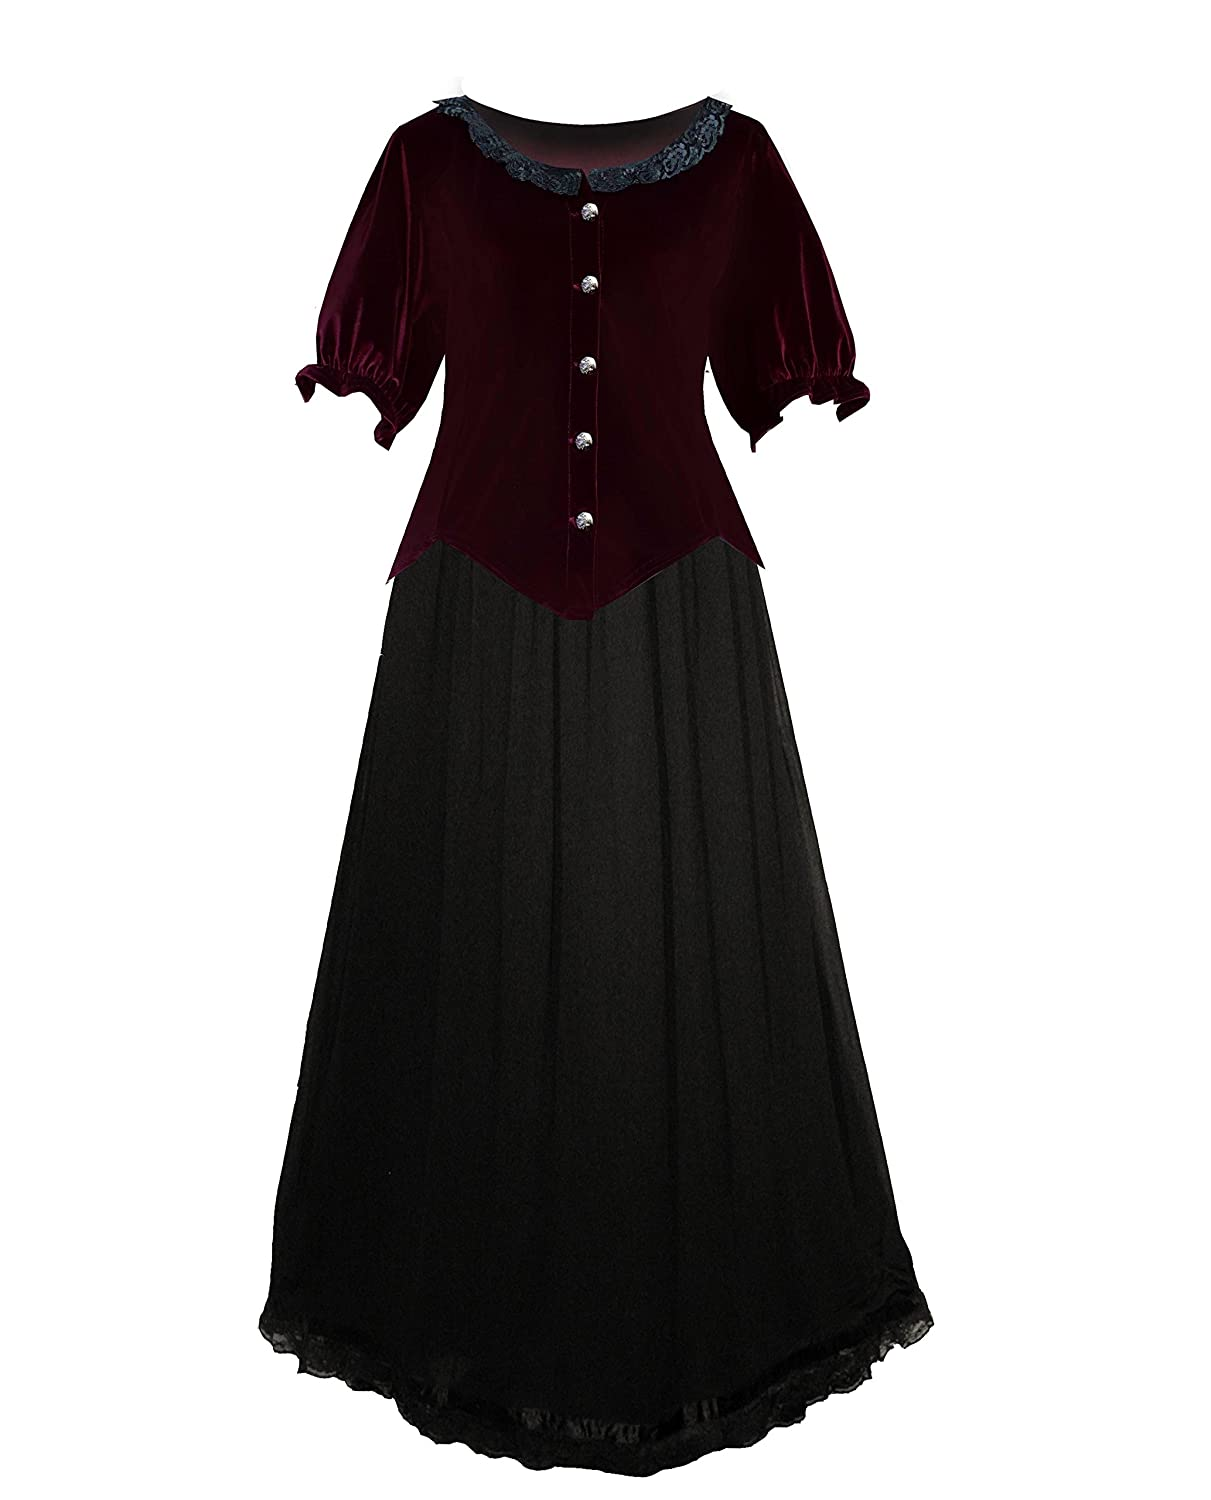 Victorian Dresses | Victorian Ballgowns | Victorian Clothing Victorian Steampunk Gothic Renaissance Velvet Top & Long Skirt $89.00 AT vintagedancer.com